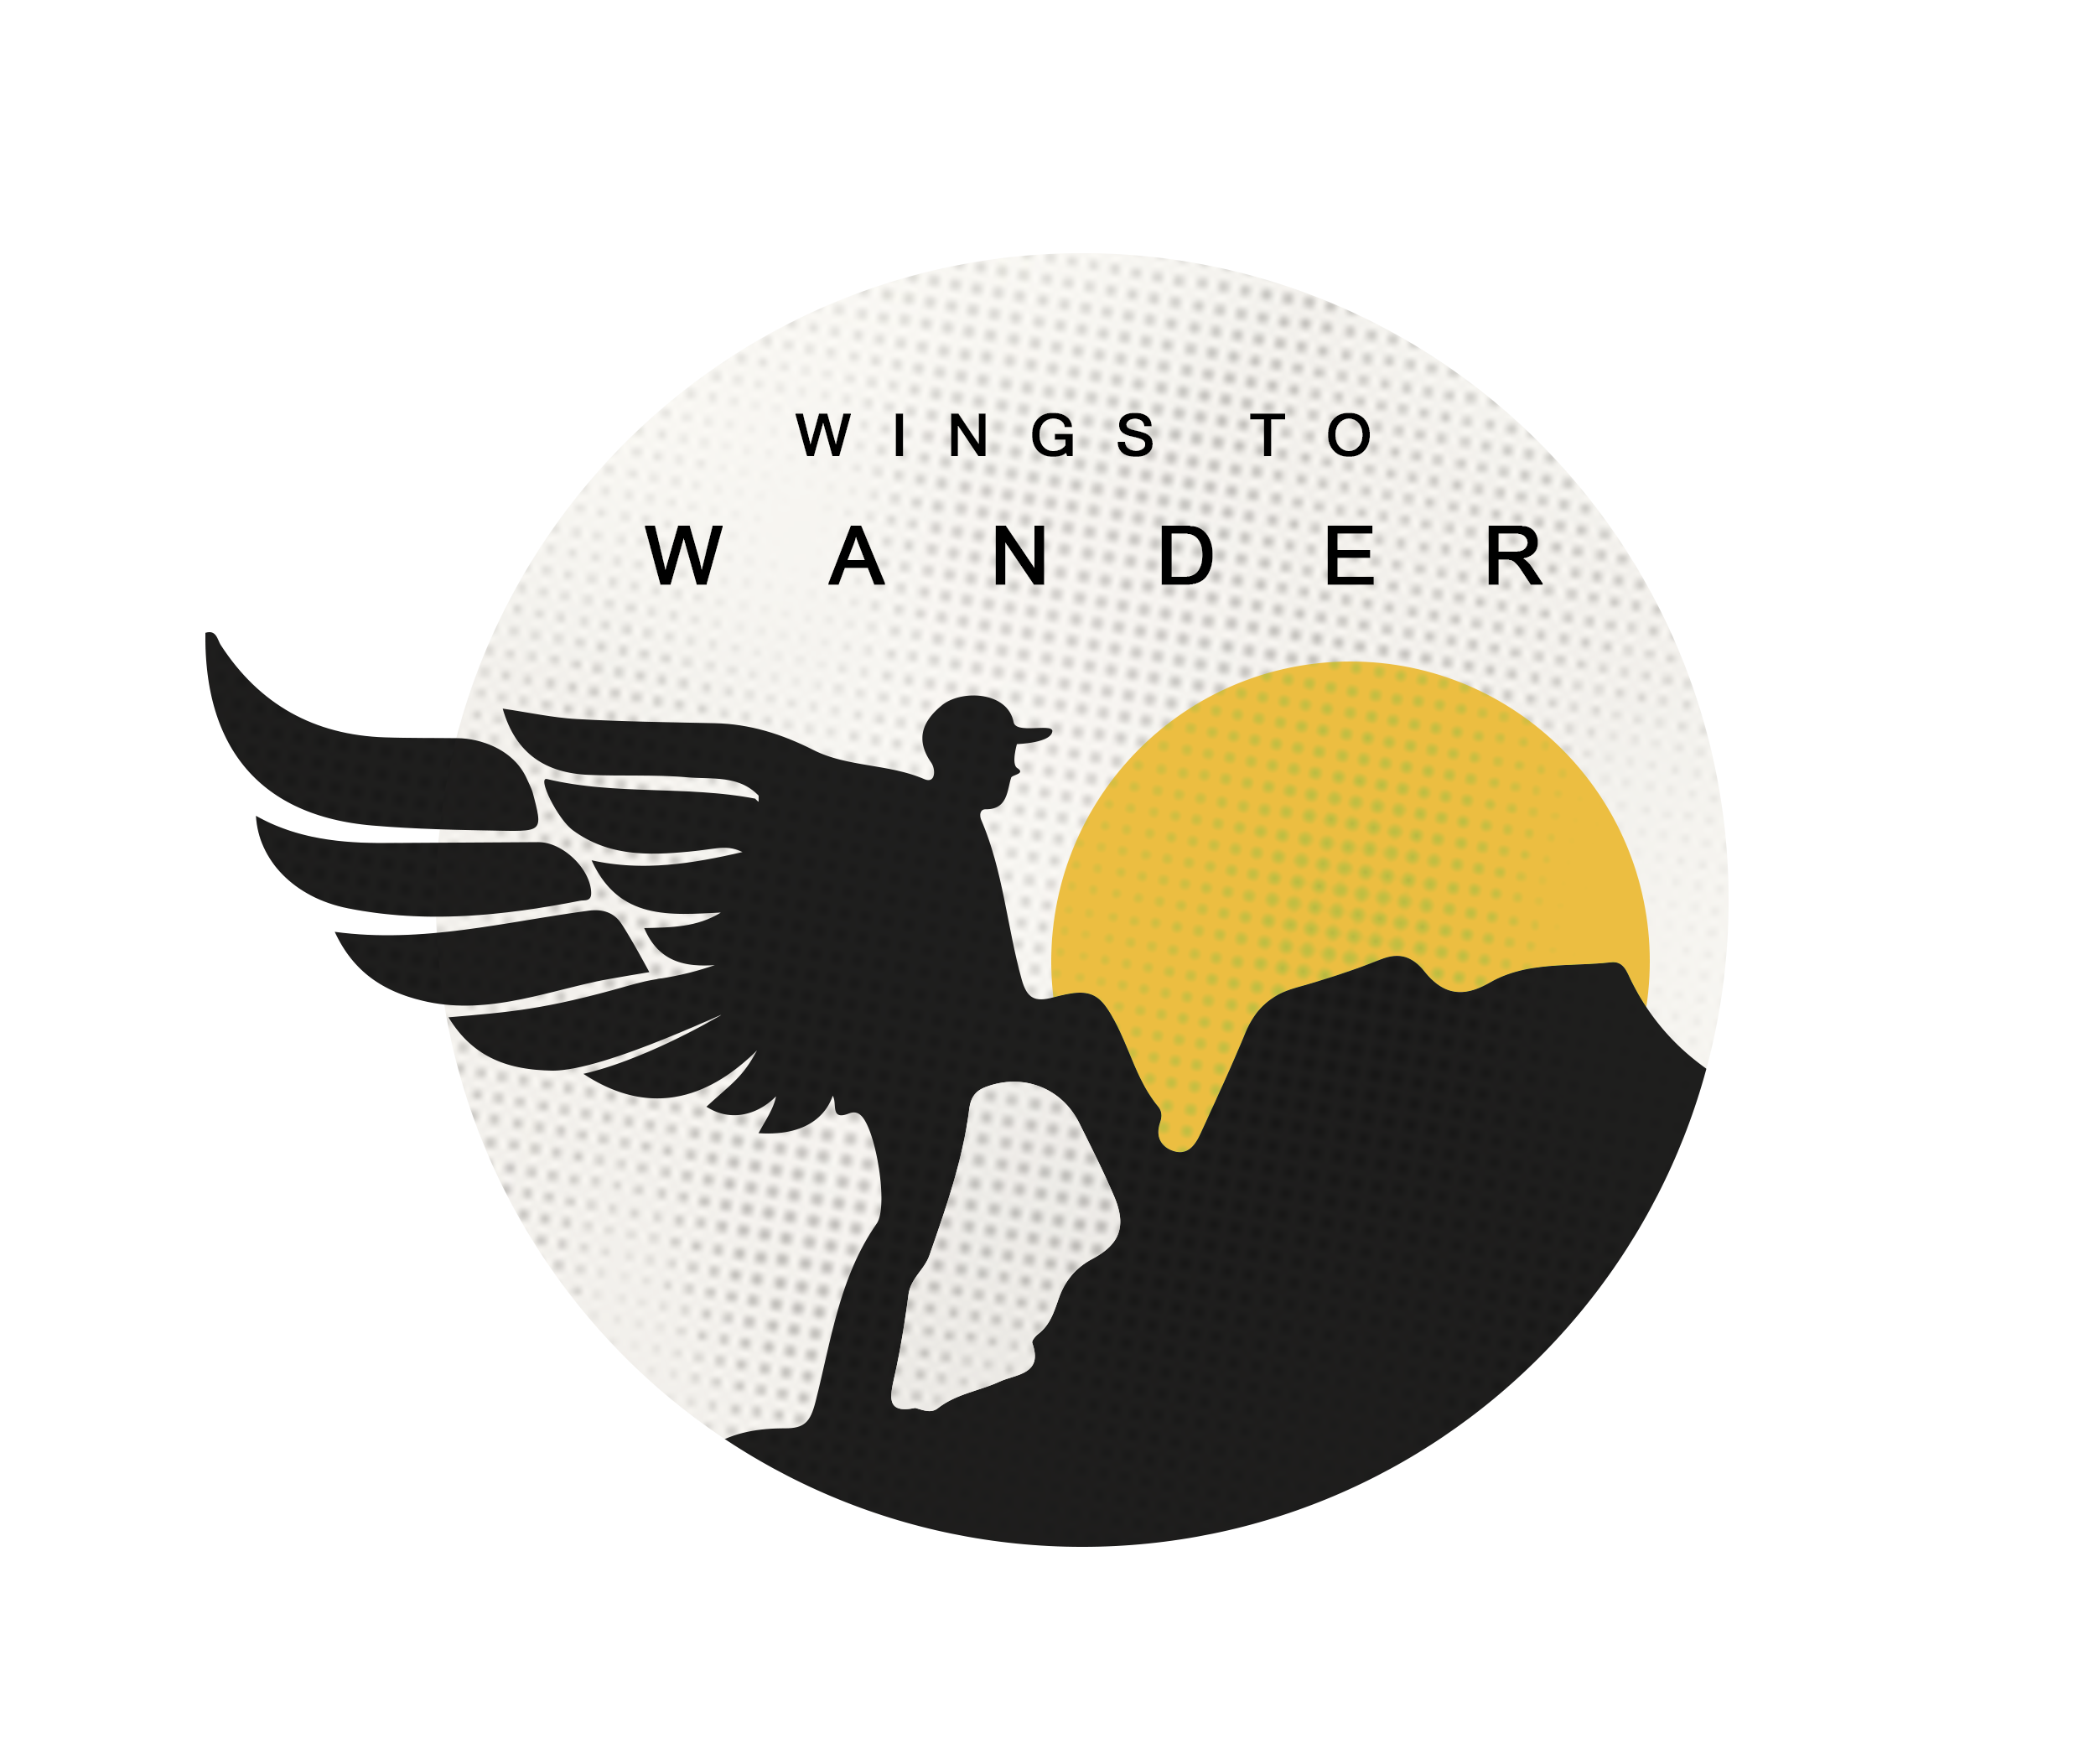 wings to wander